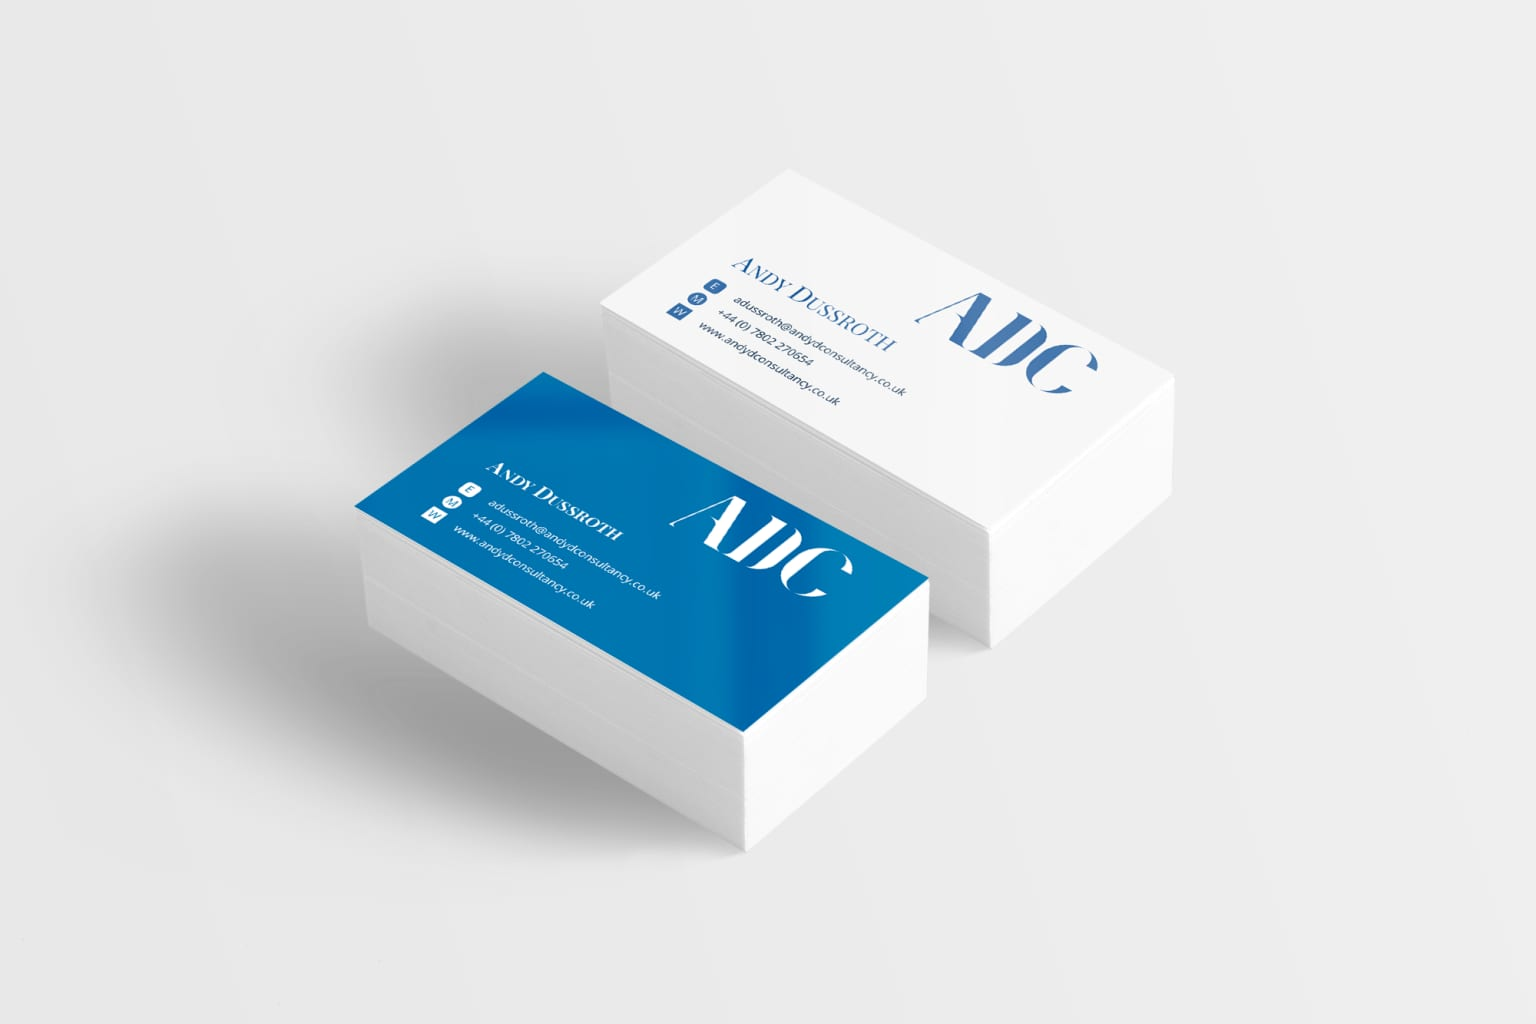 AndyD Consultancy brand strategy and development